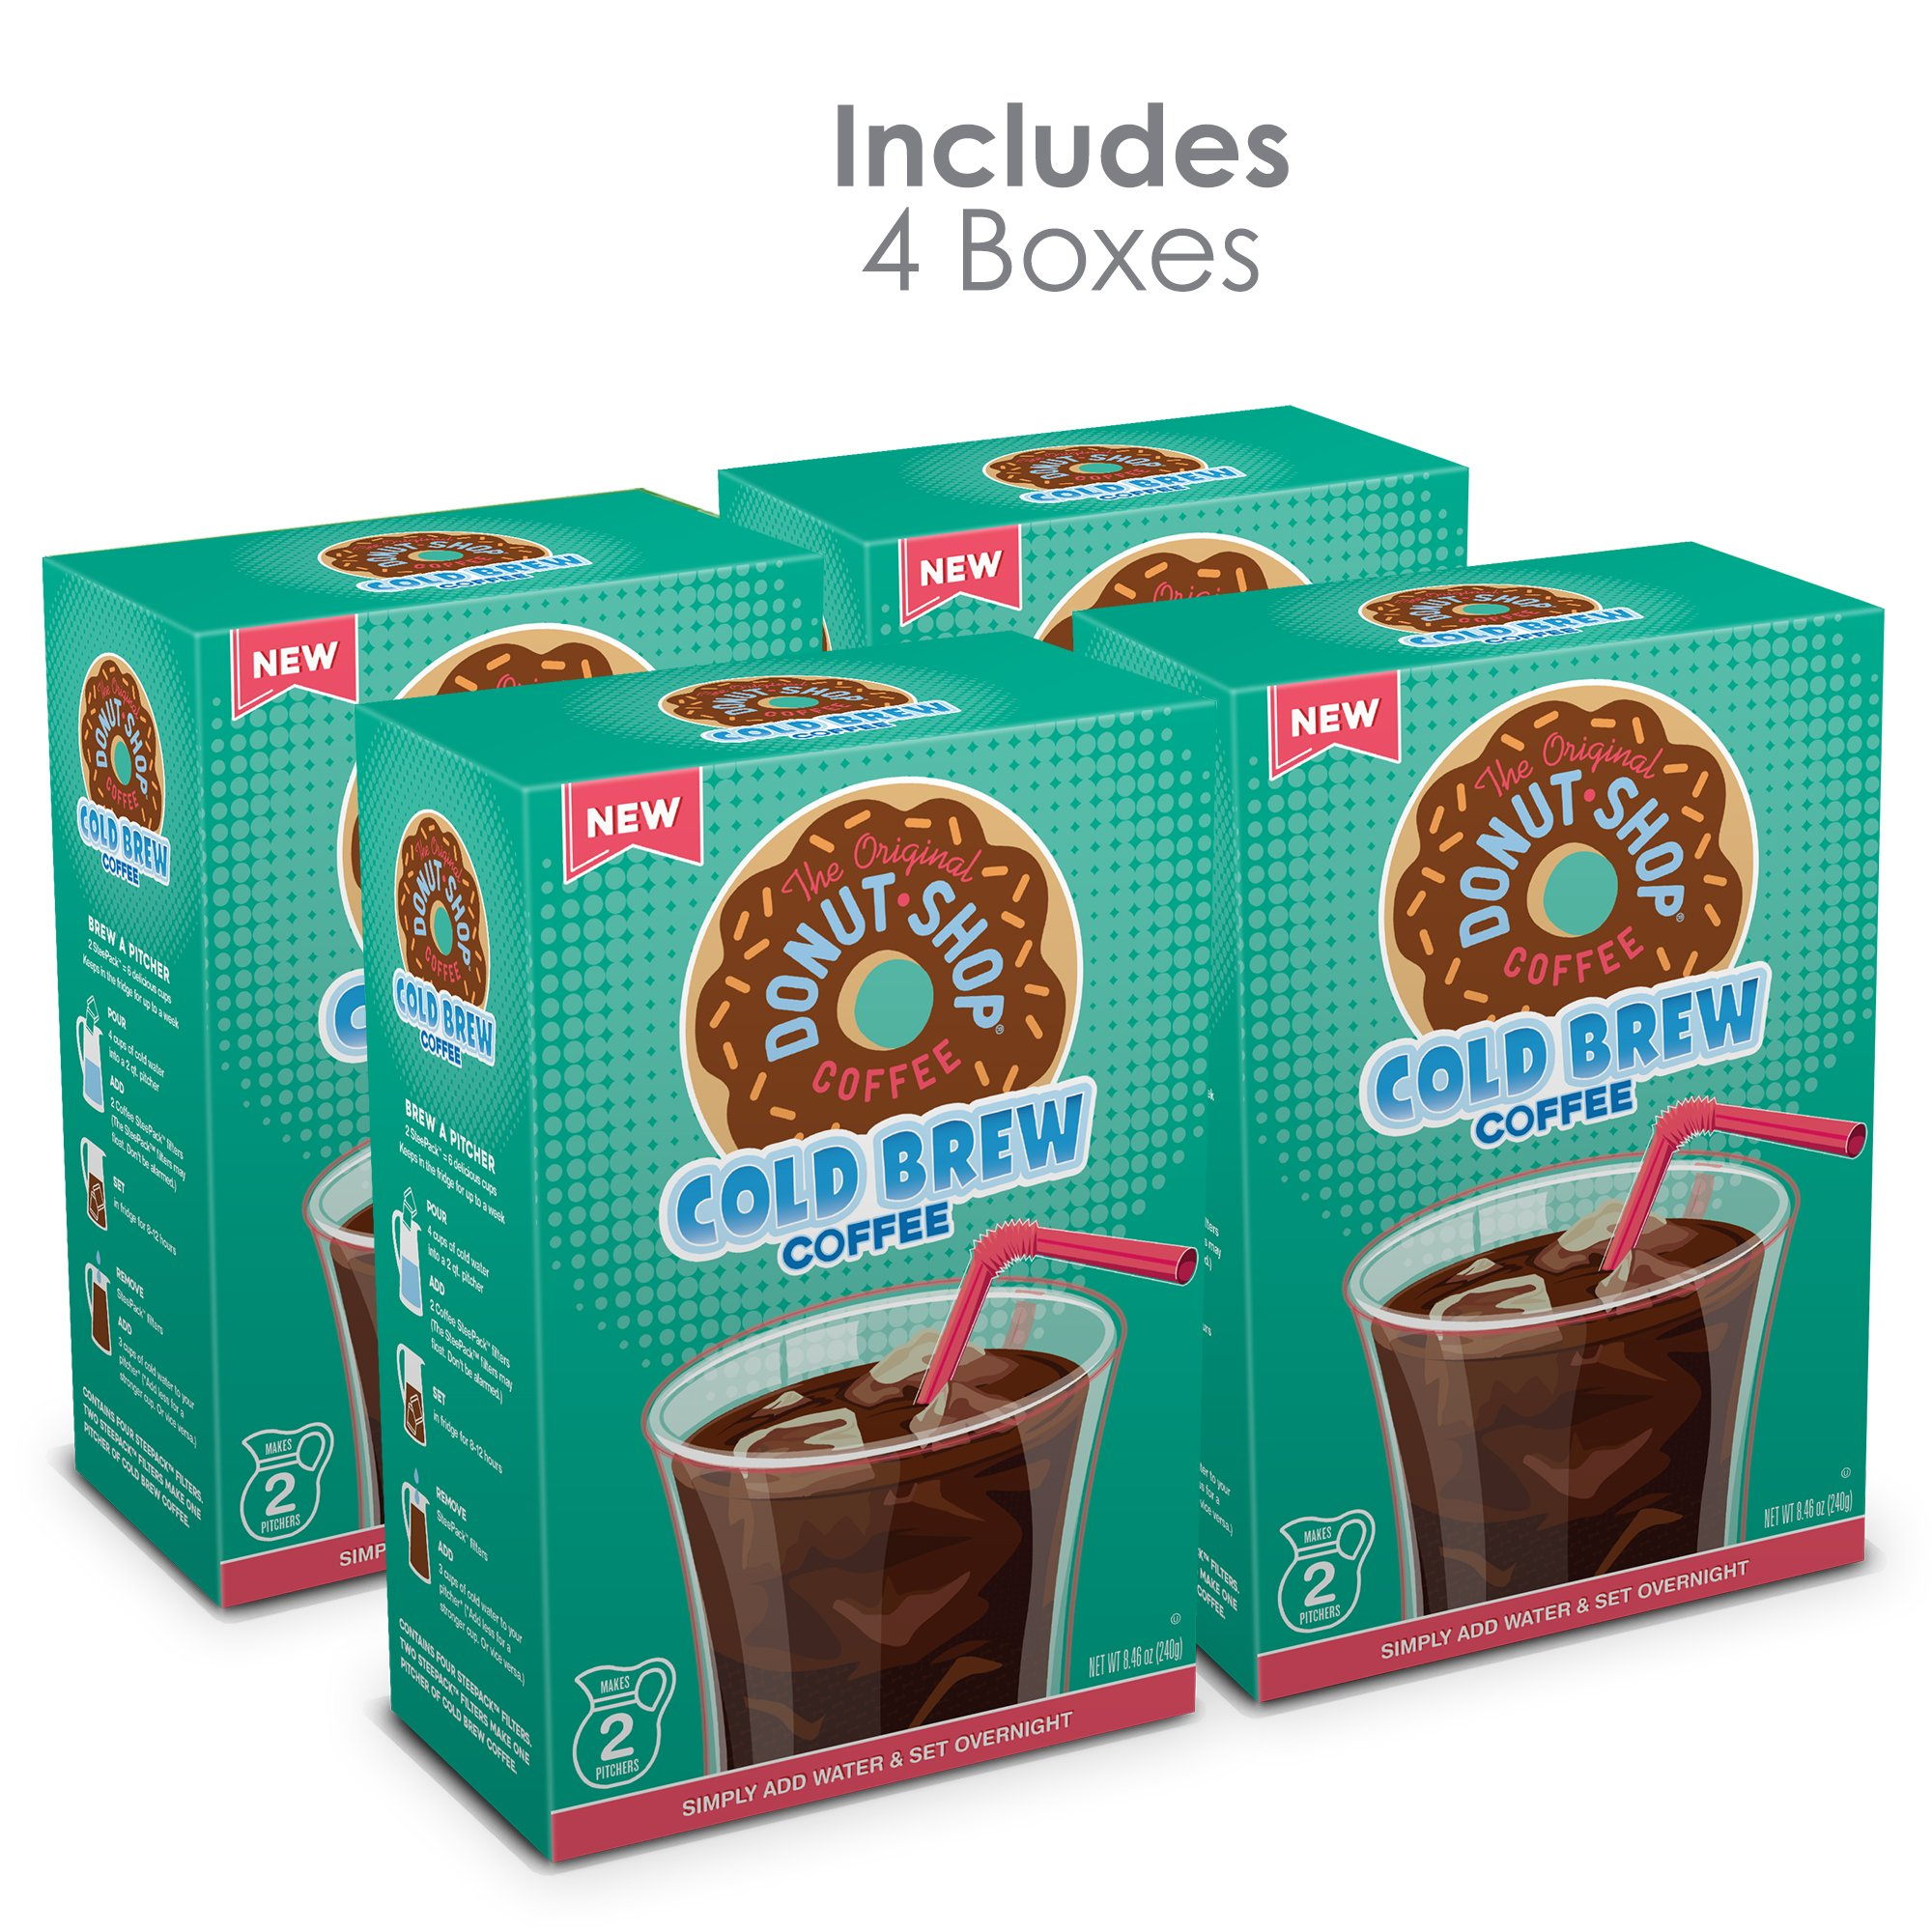 The Original Donut Shop, Cold Brew Coffee, Coarse Ground, Makes 8 - 48oz.  Pitchers of Real Cold Brew Coffee, (4 boxes of 4 filters total of 16 SteePack Filters)